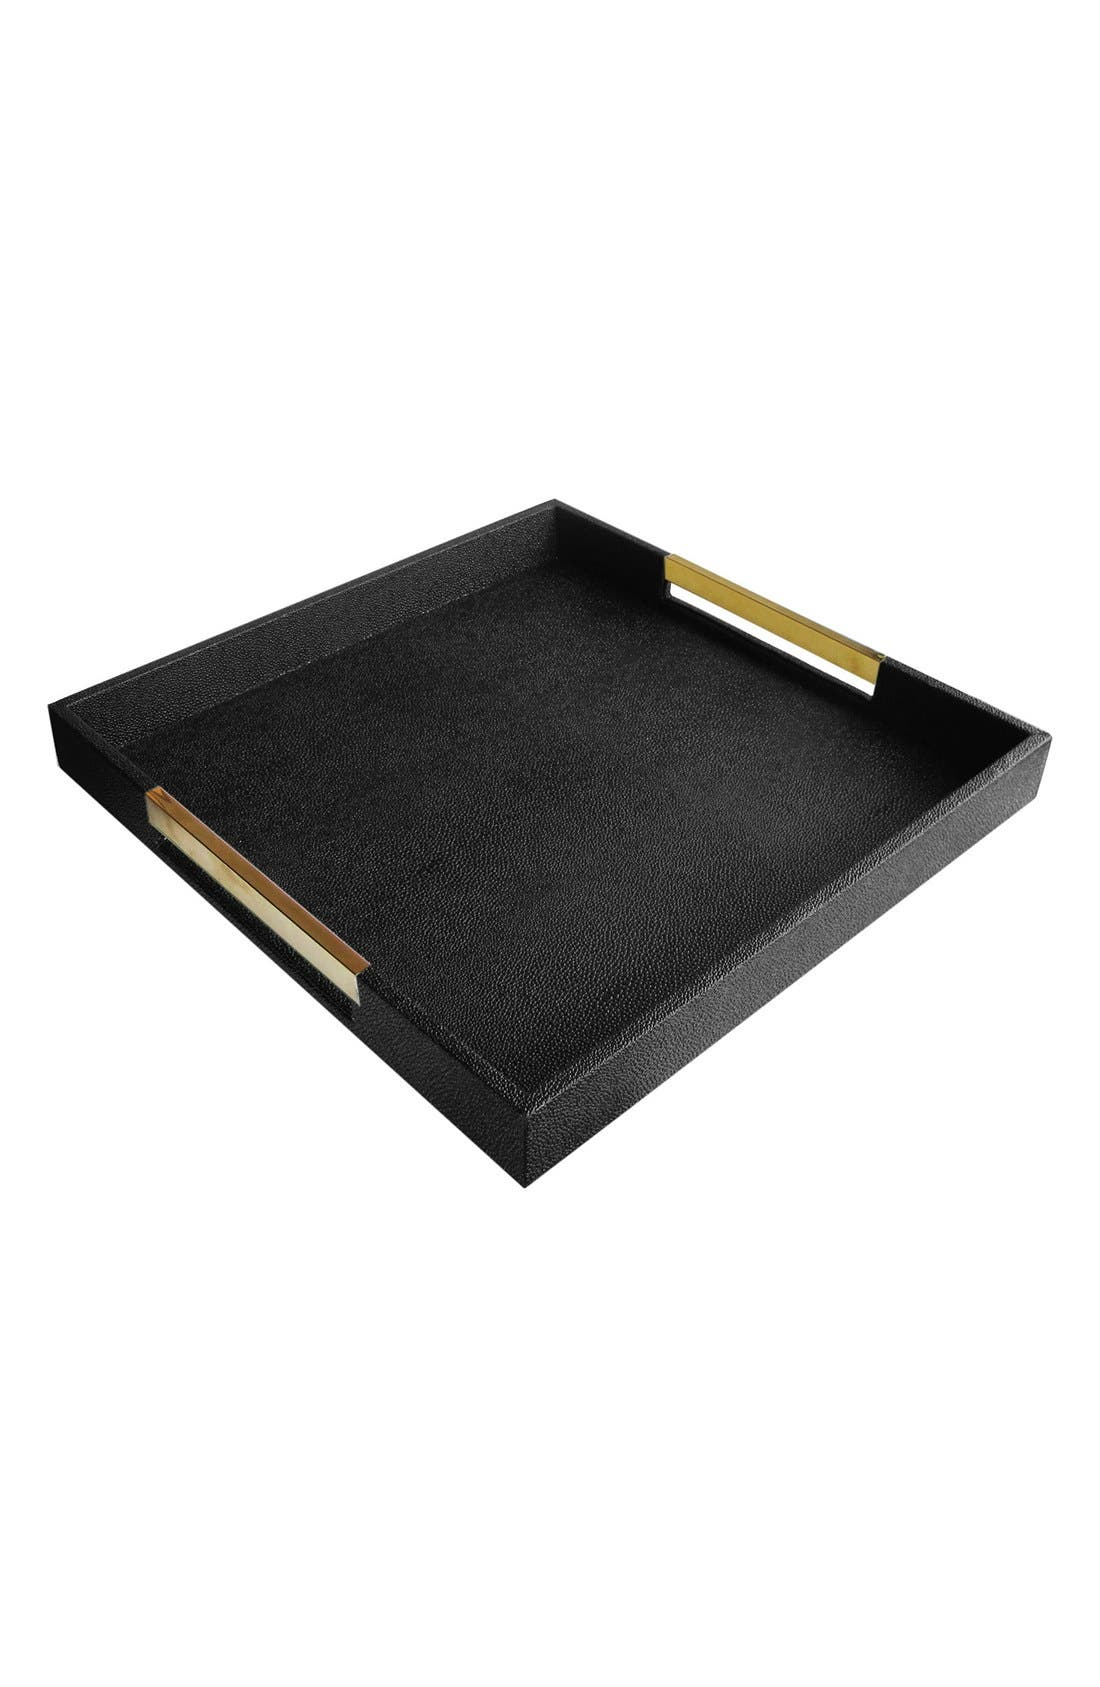 AMERICAN ATELIER Goldtone Handle Decorative Tray